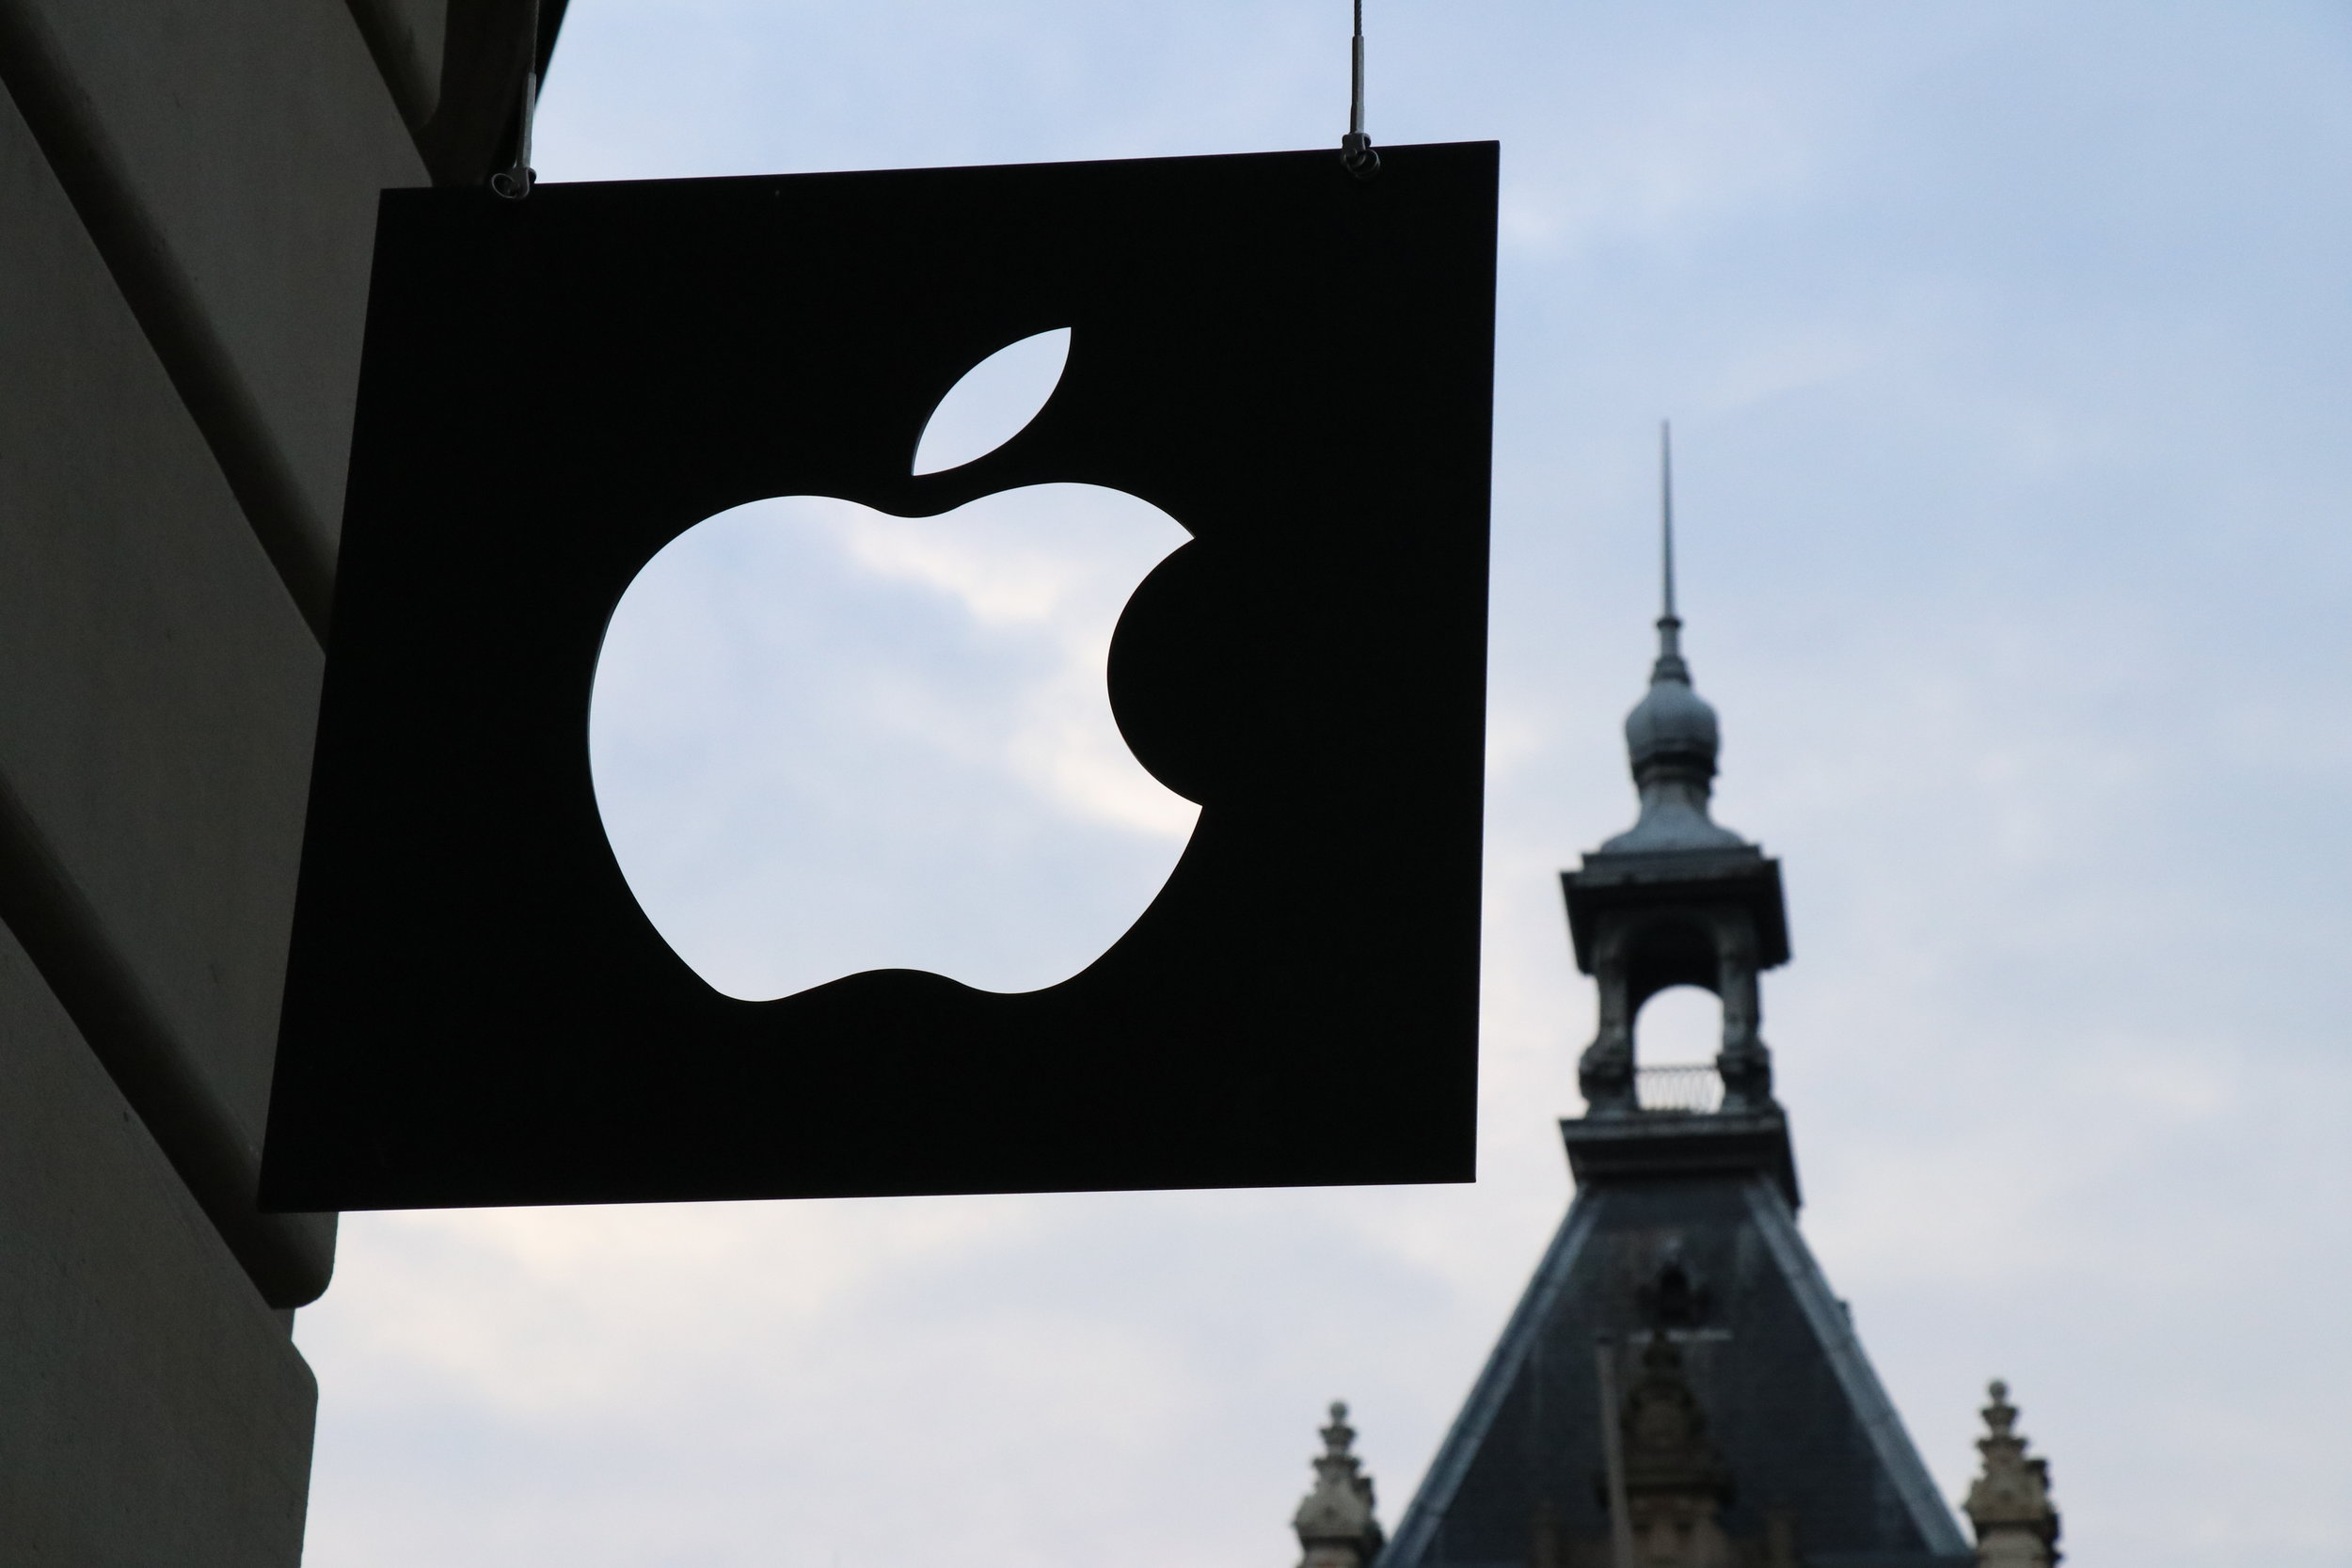 apple-data-protection-commission.jpg